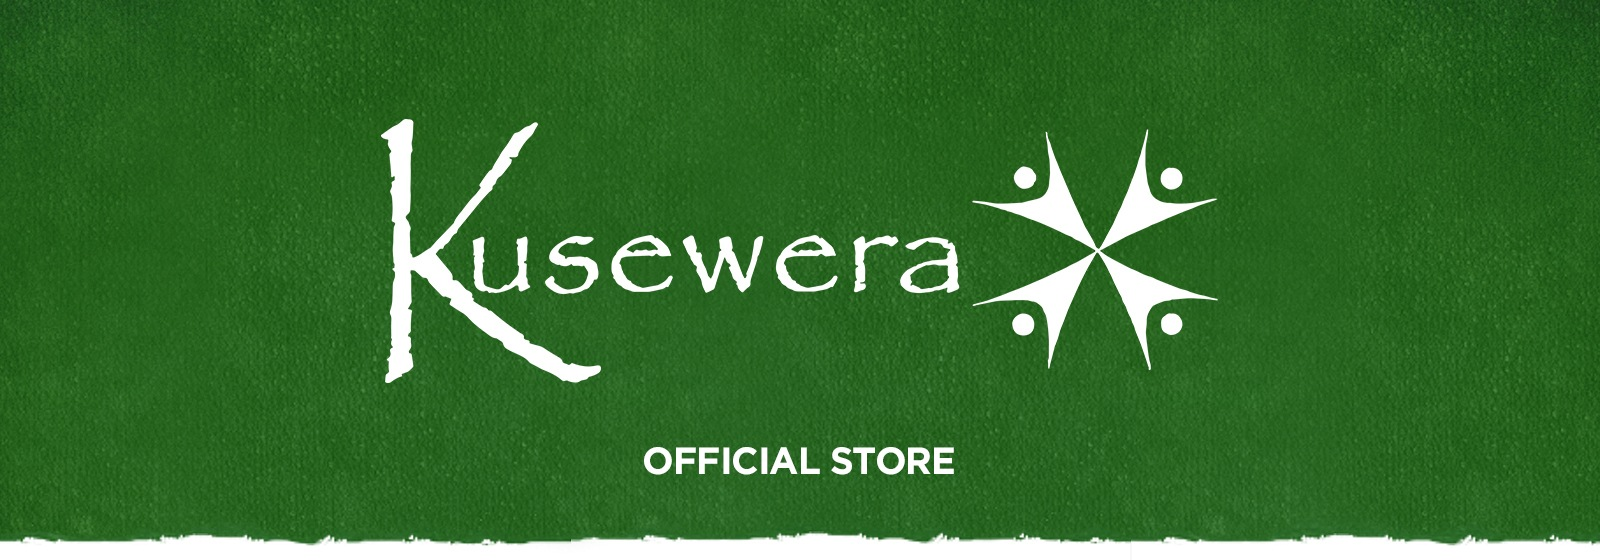 Kusewera Official Store Store